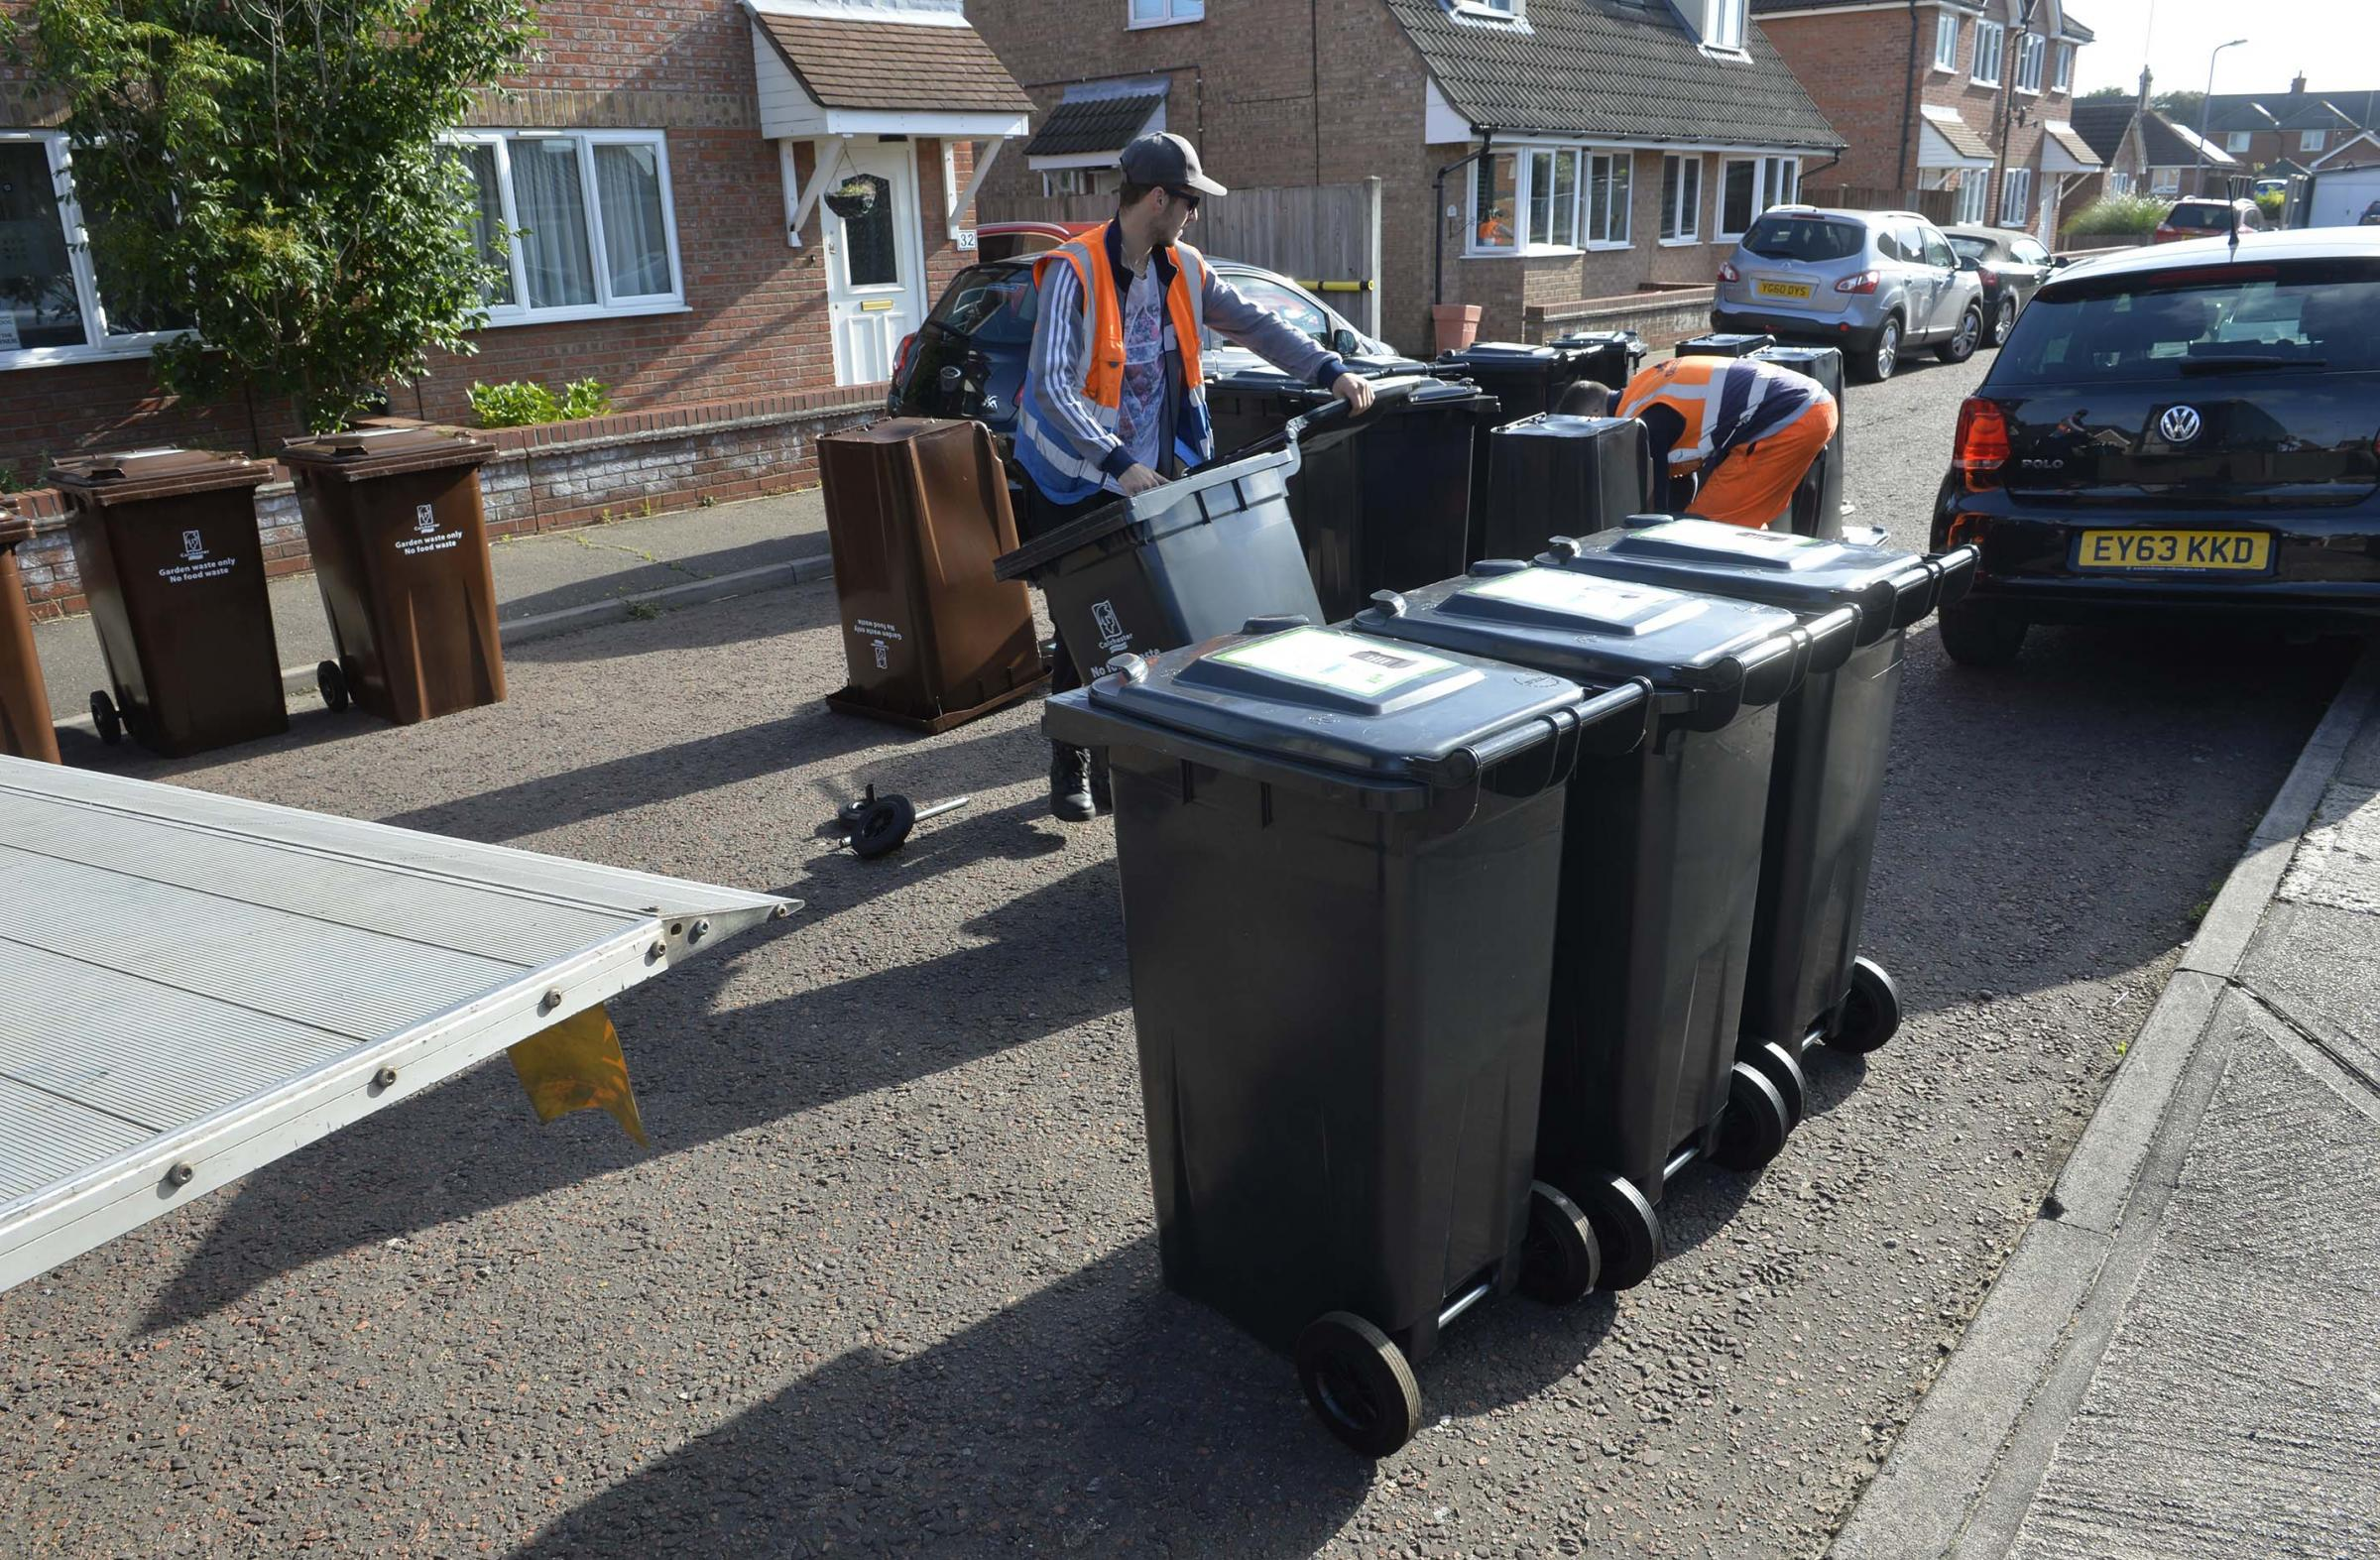 Poll finds readers split 50-50 over plans for wheelie bins in Tendring